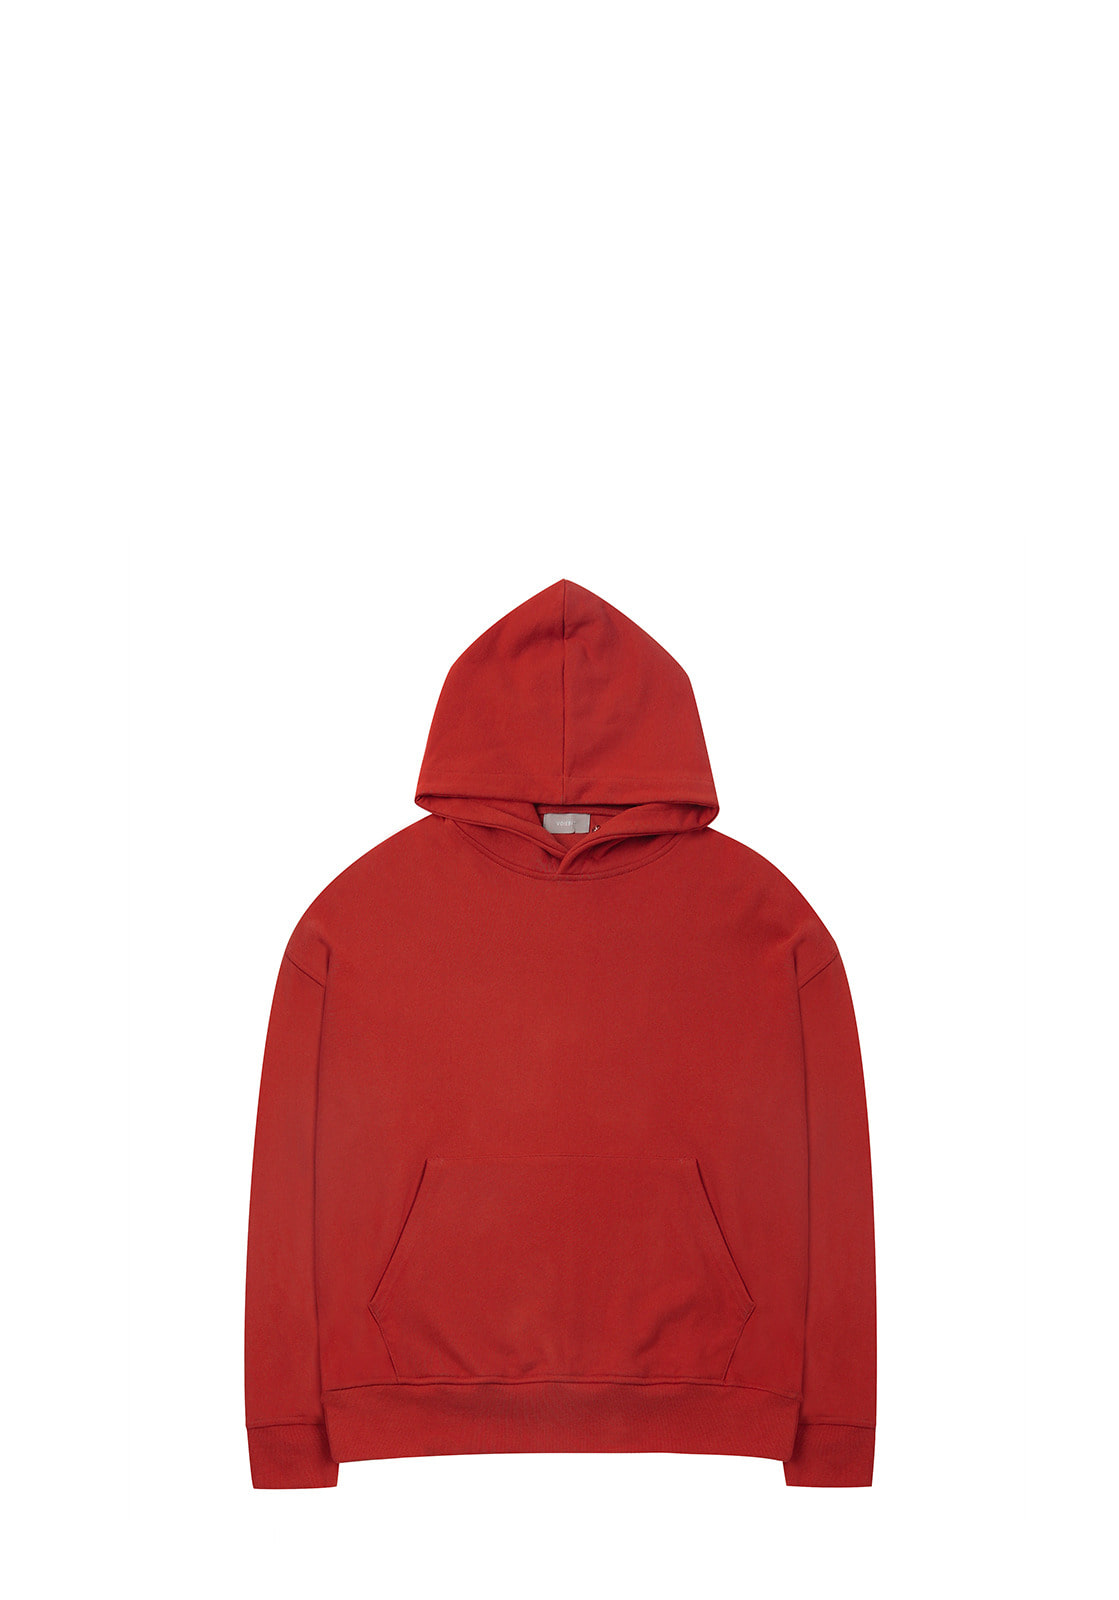 V310 OVERSIZE SNAP HOODIERED